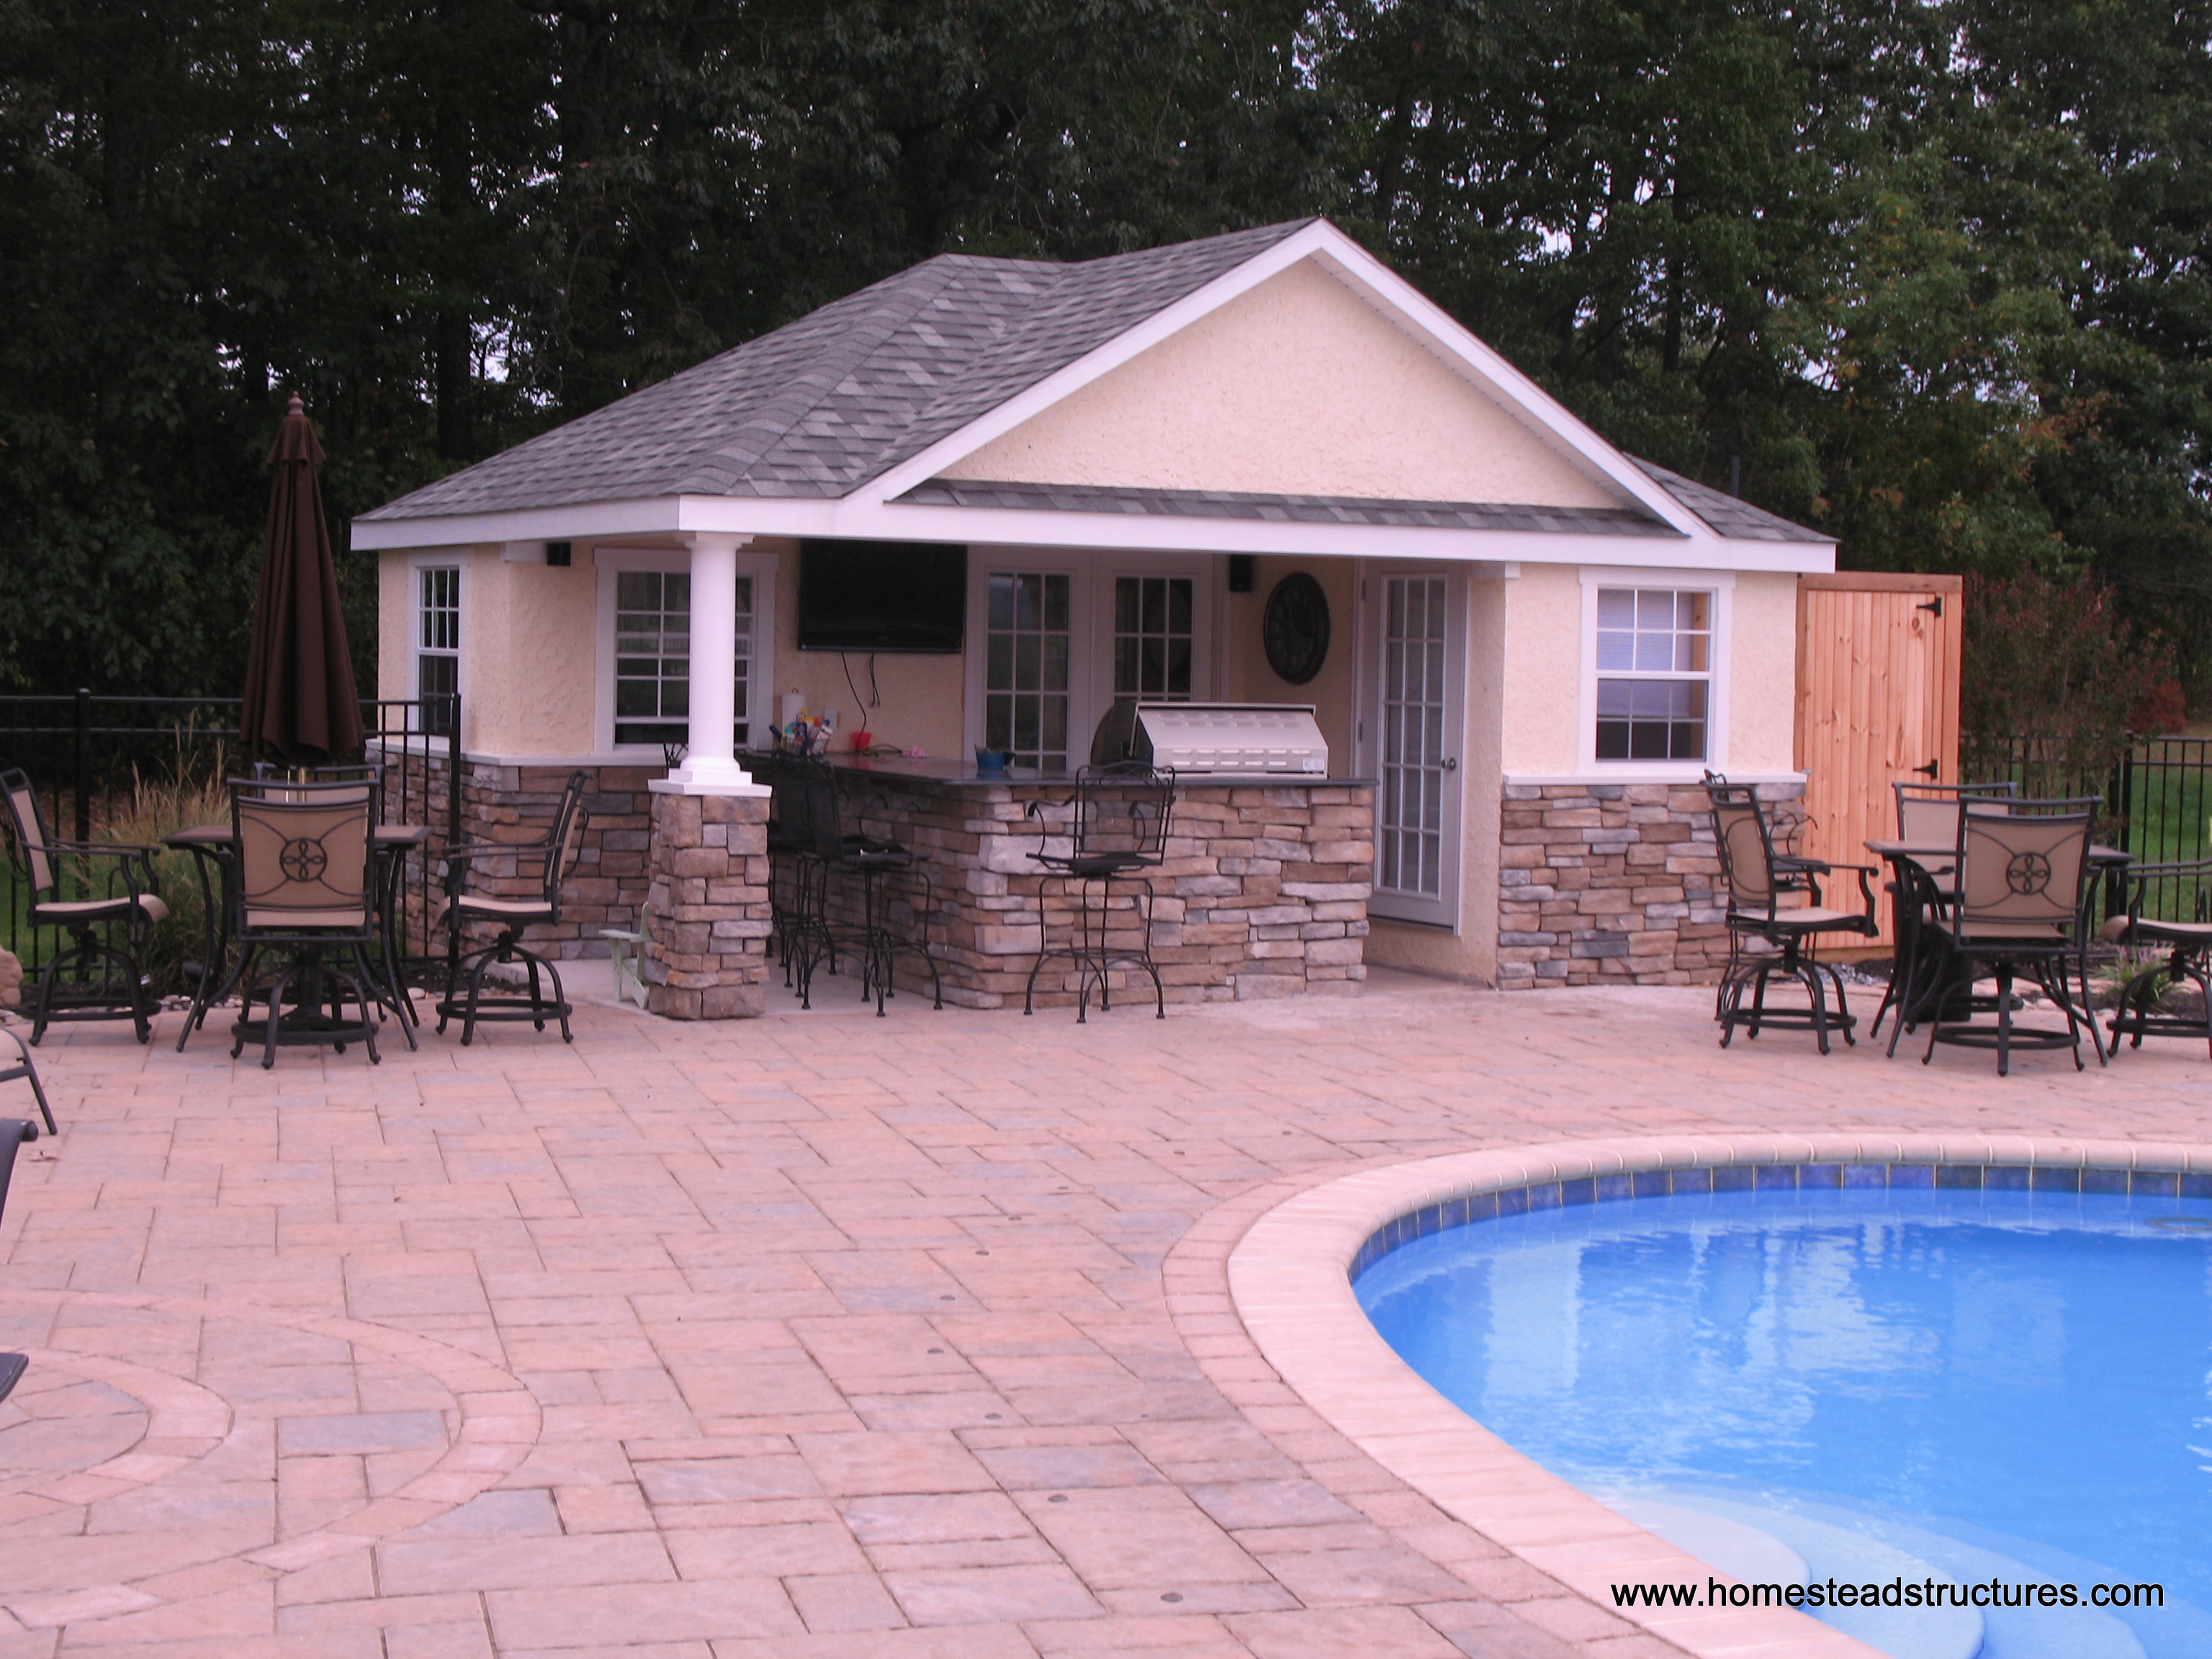 16  x 20  Wellington Poolhouse  Stucco   Stone. Pool Houses  Cabanas  Pool Sheds   Pool Side Bars   Homestead